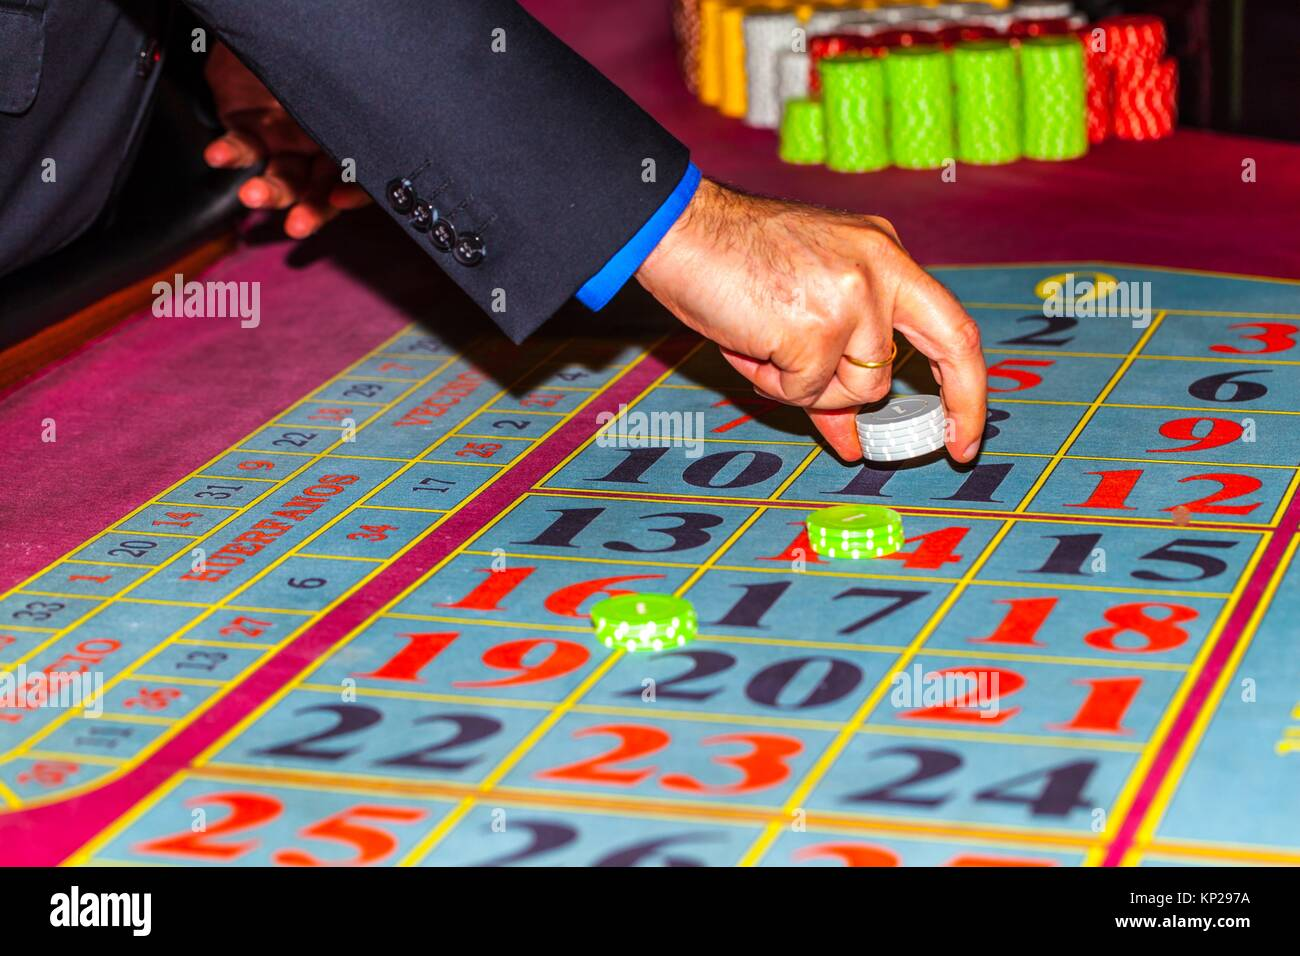 Club de jeux de casino Photo Stock